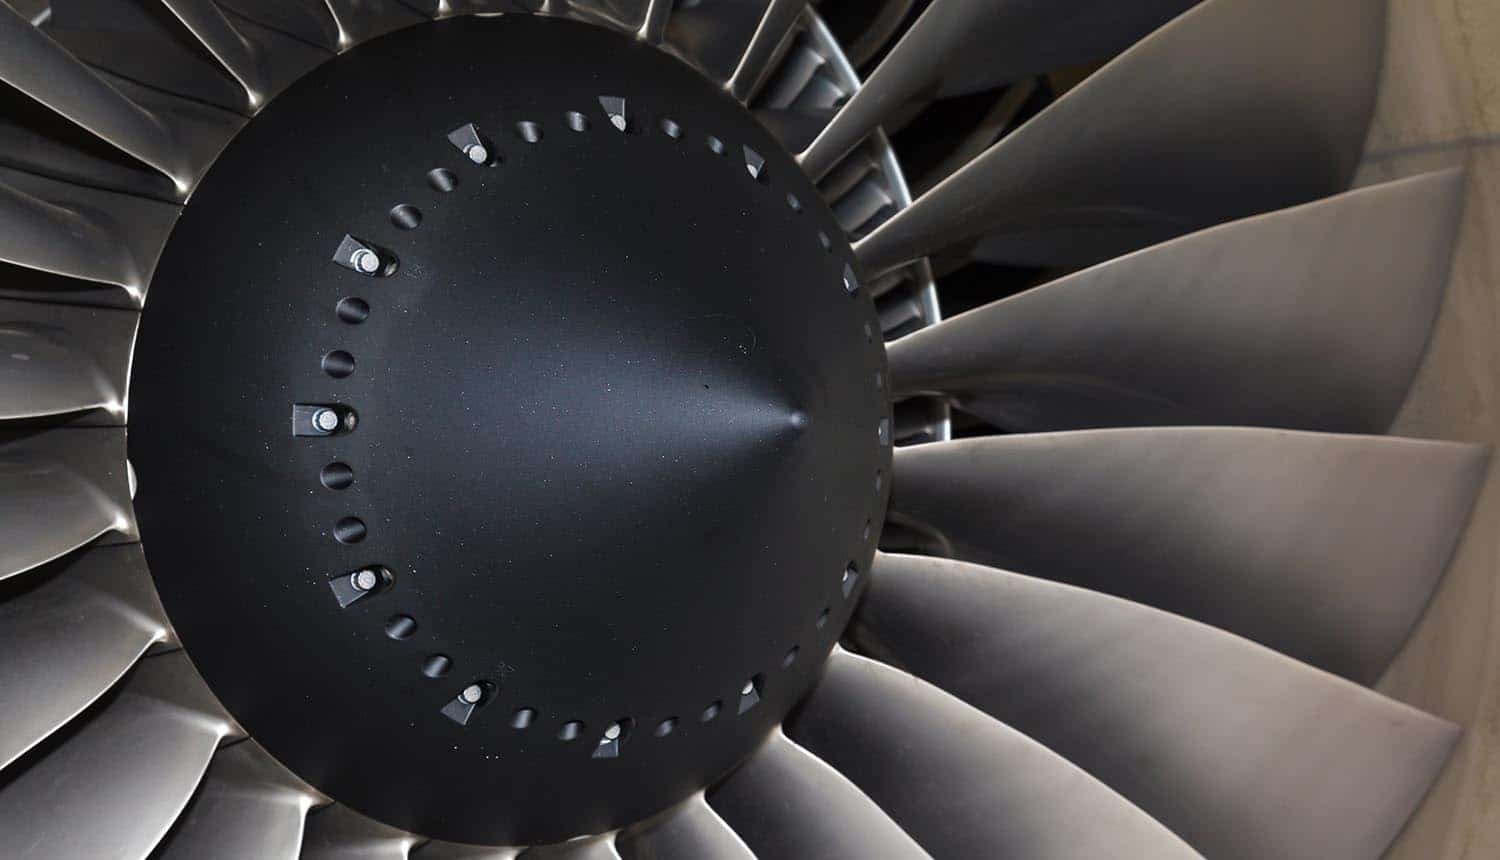 Picture of jet engine showing why Chinese hackers could be behind the airline EasyJet's cyber attack